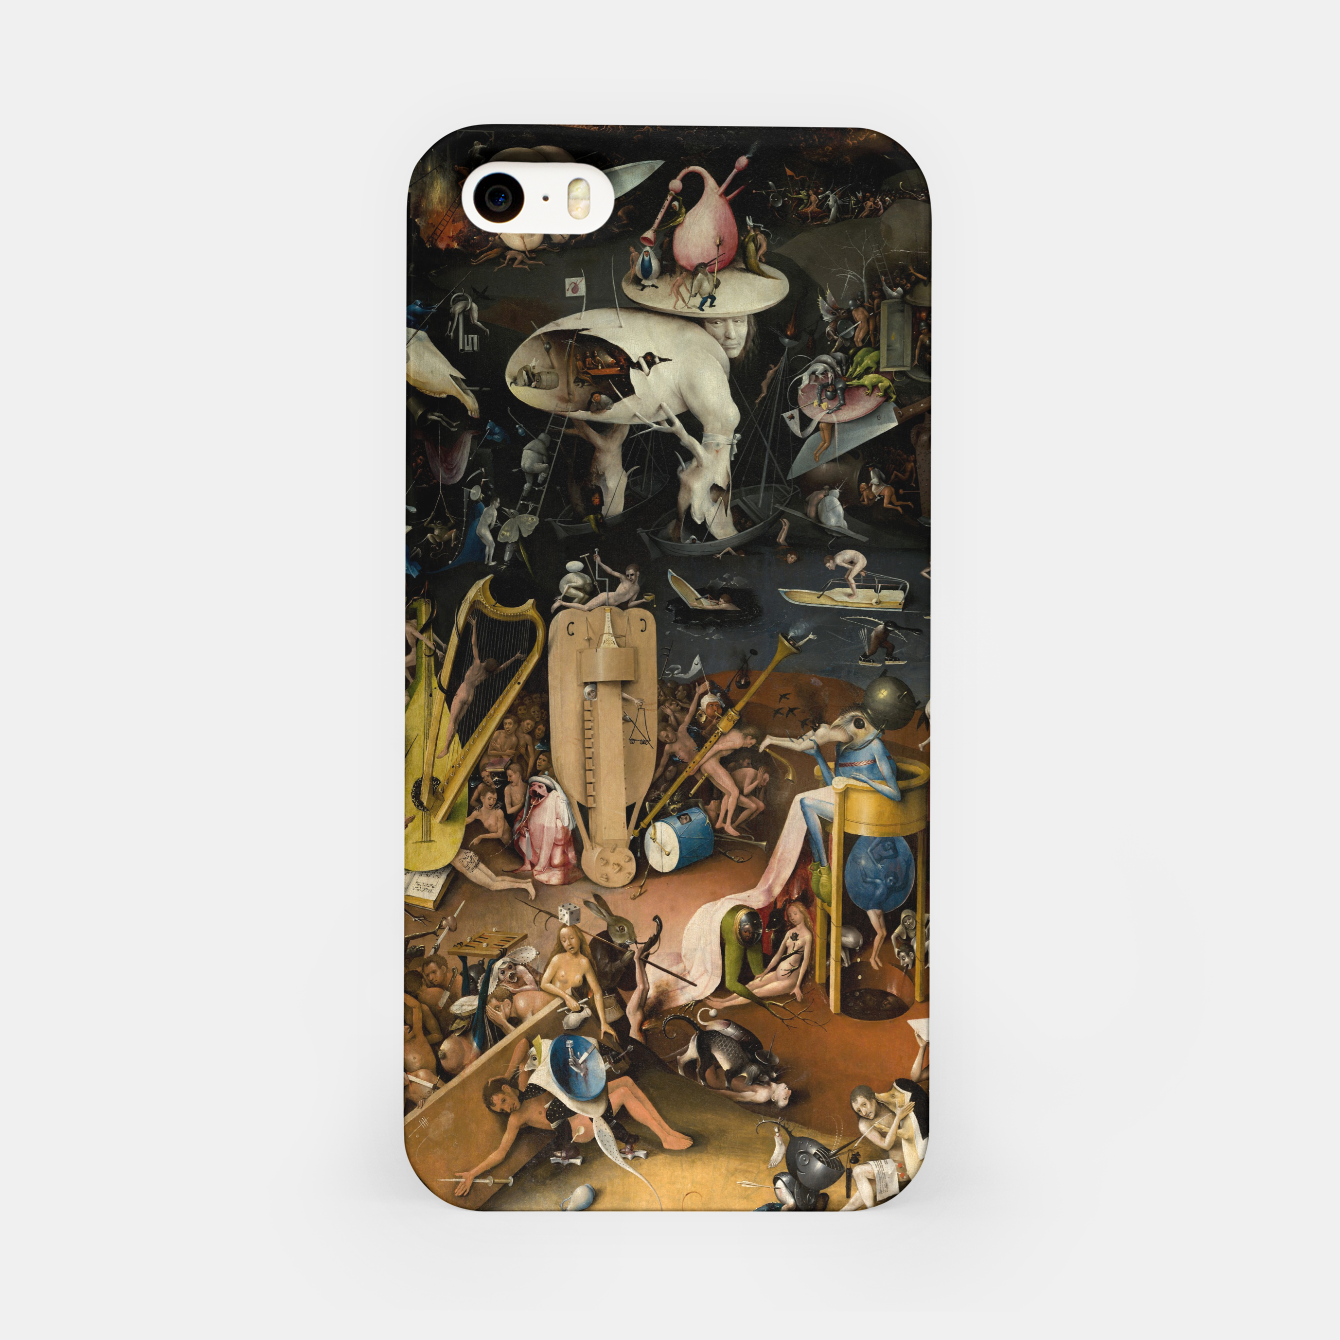 Zdjęcie Fashion and decor items from Hieronymus Bosch painting of Hell from the triptych Garden of Earthly Delights iPhone Case - Live Heroes